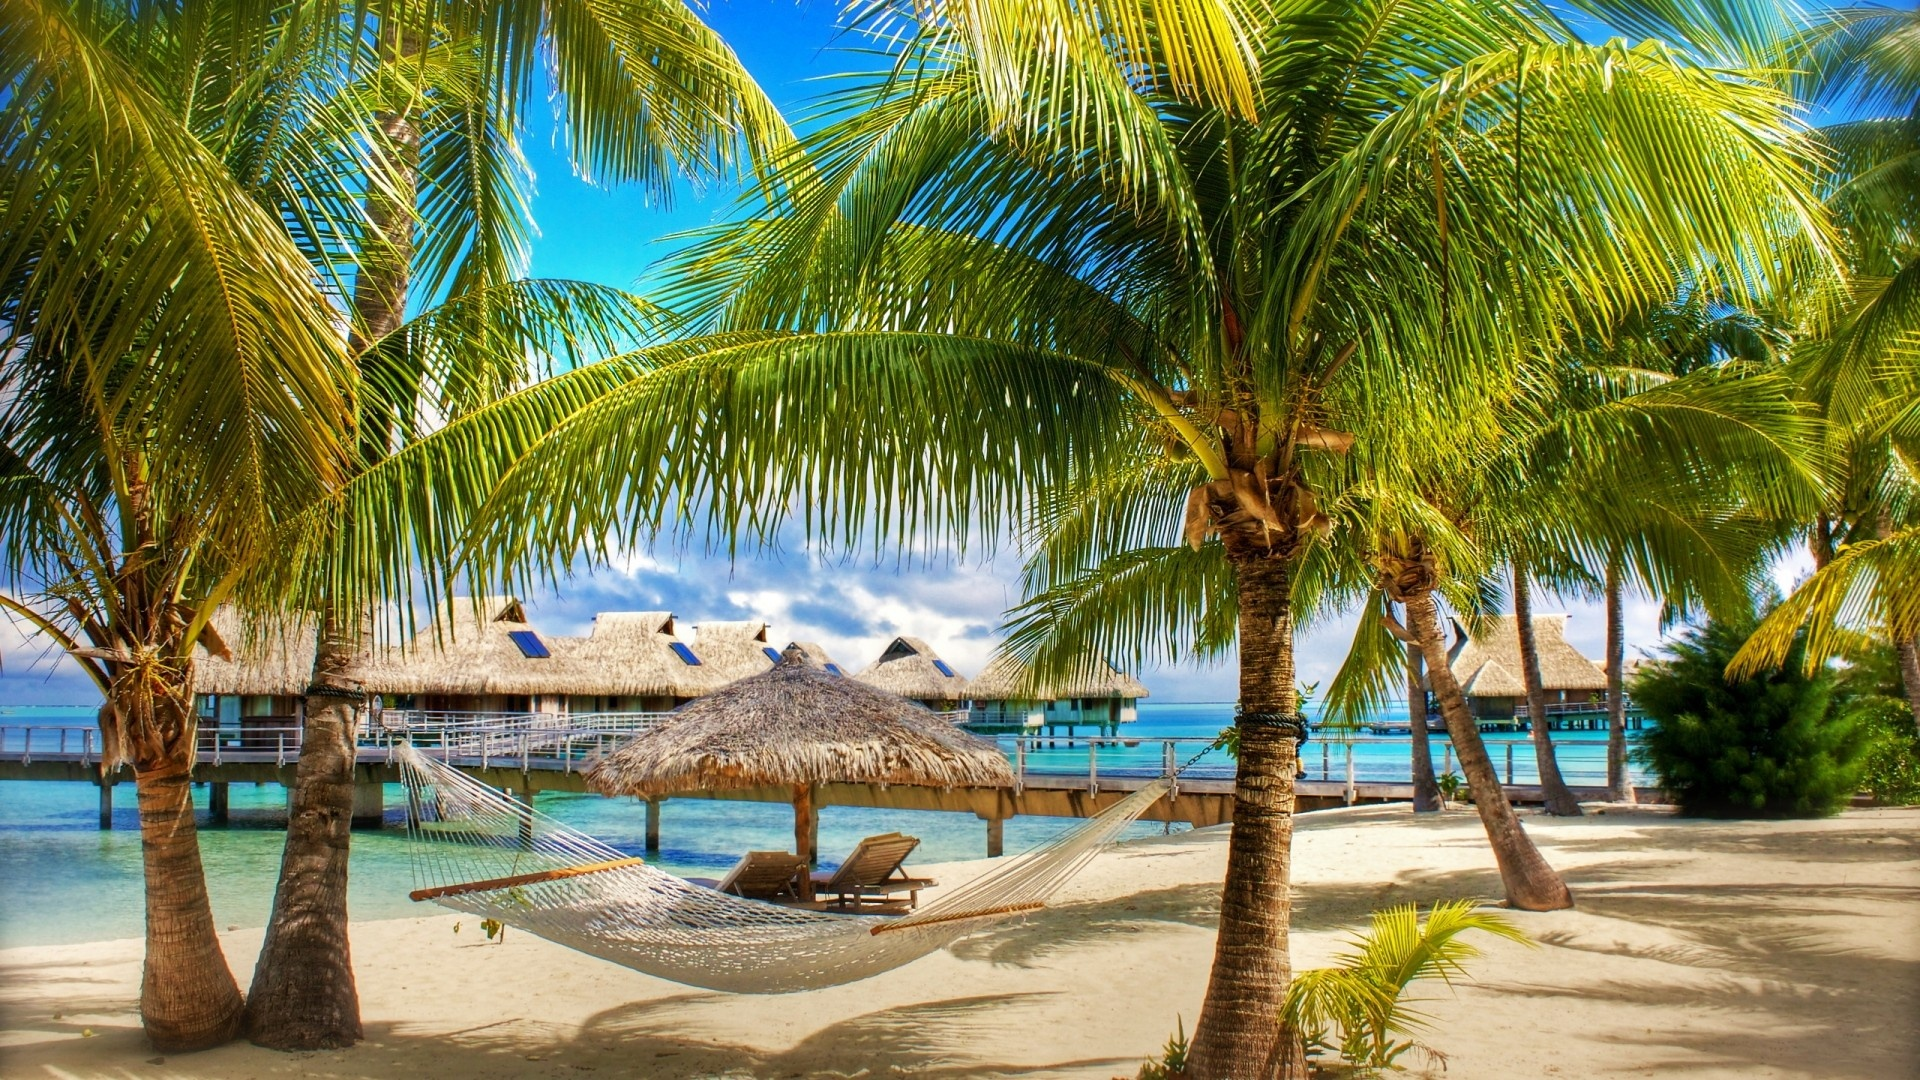 tropical resorts wallpaper background - photo #11